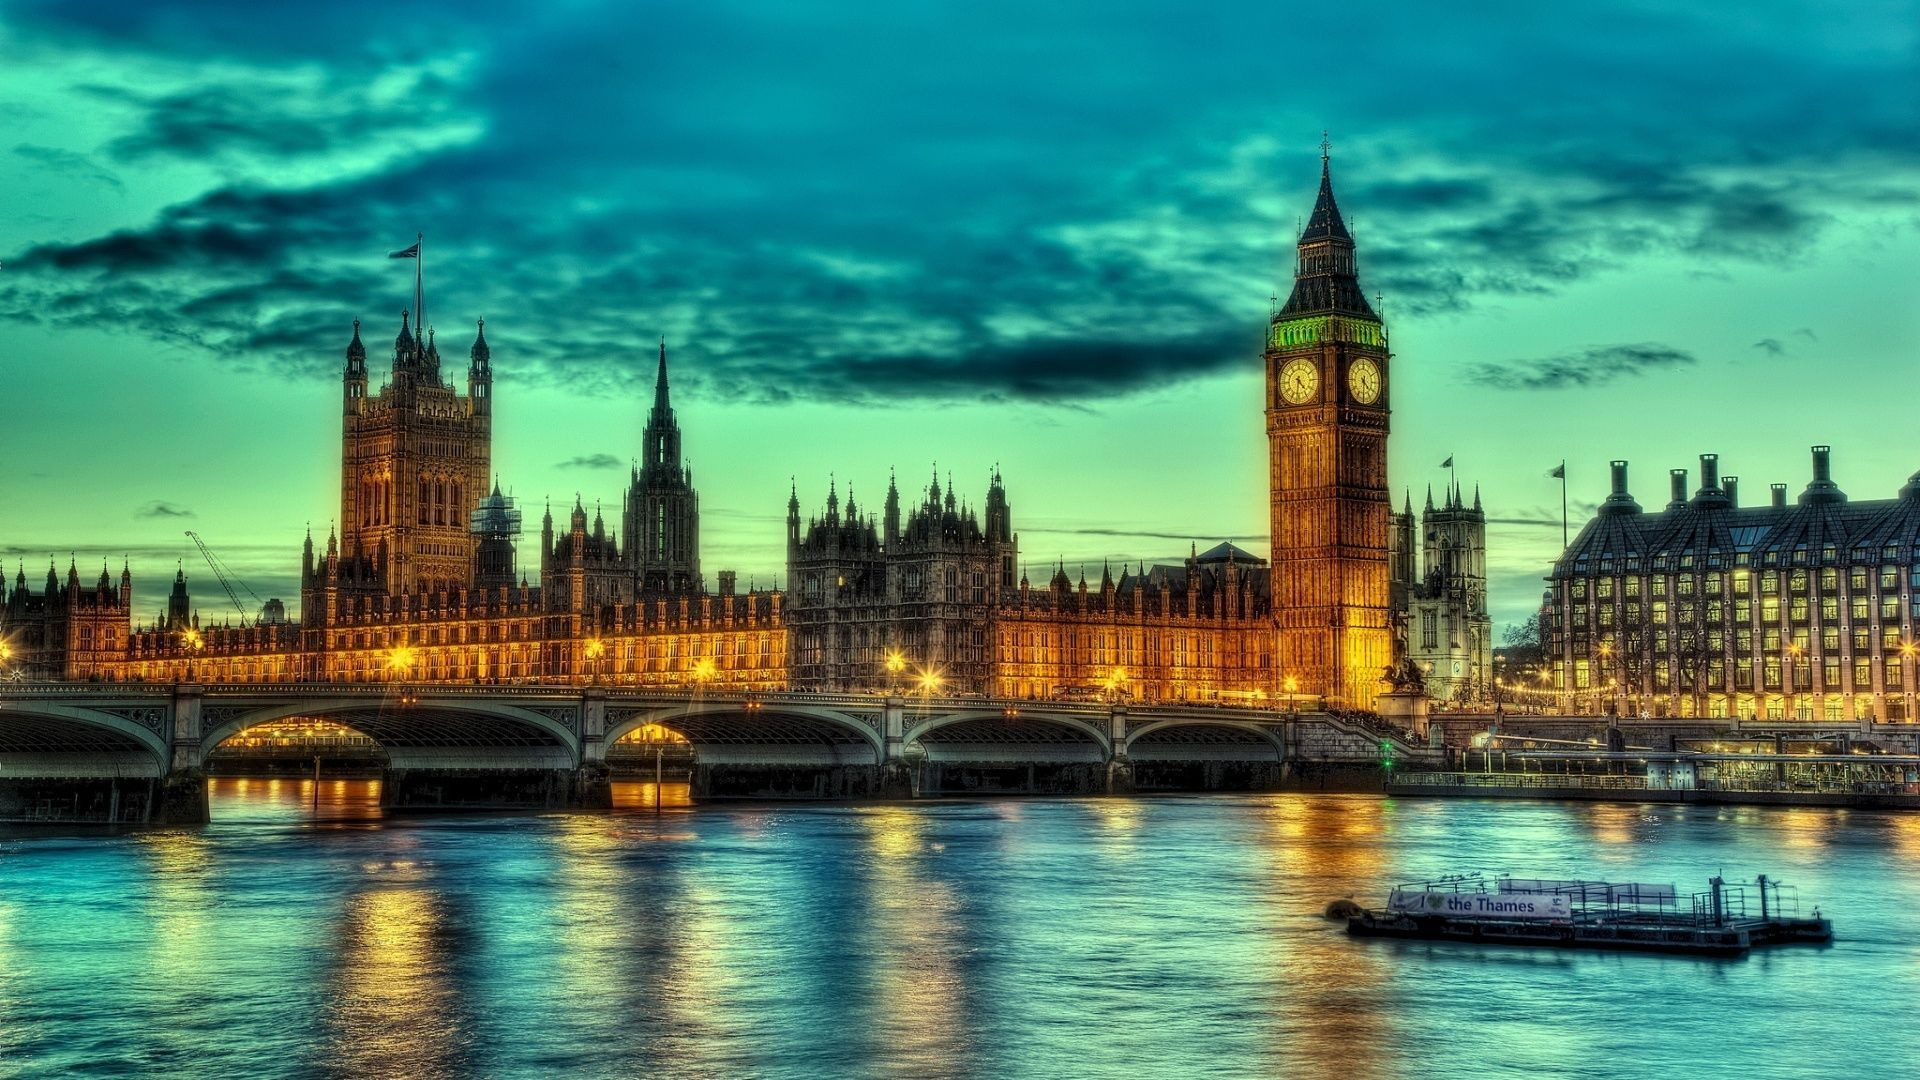 1920x1080 most beautiful london wallpapers in hd for free download 1920aƒ 1080 london wallpaper 38 wallpapers adorable wallpapers desktop pinterest